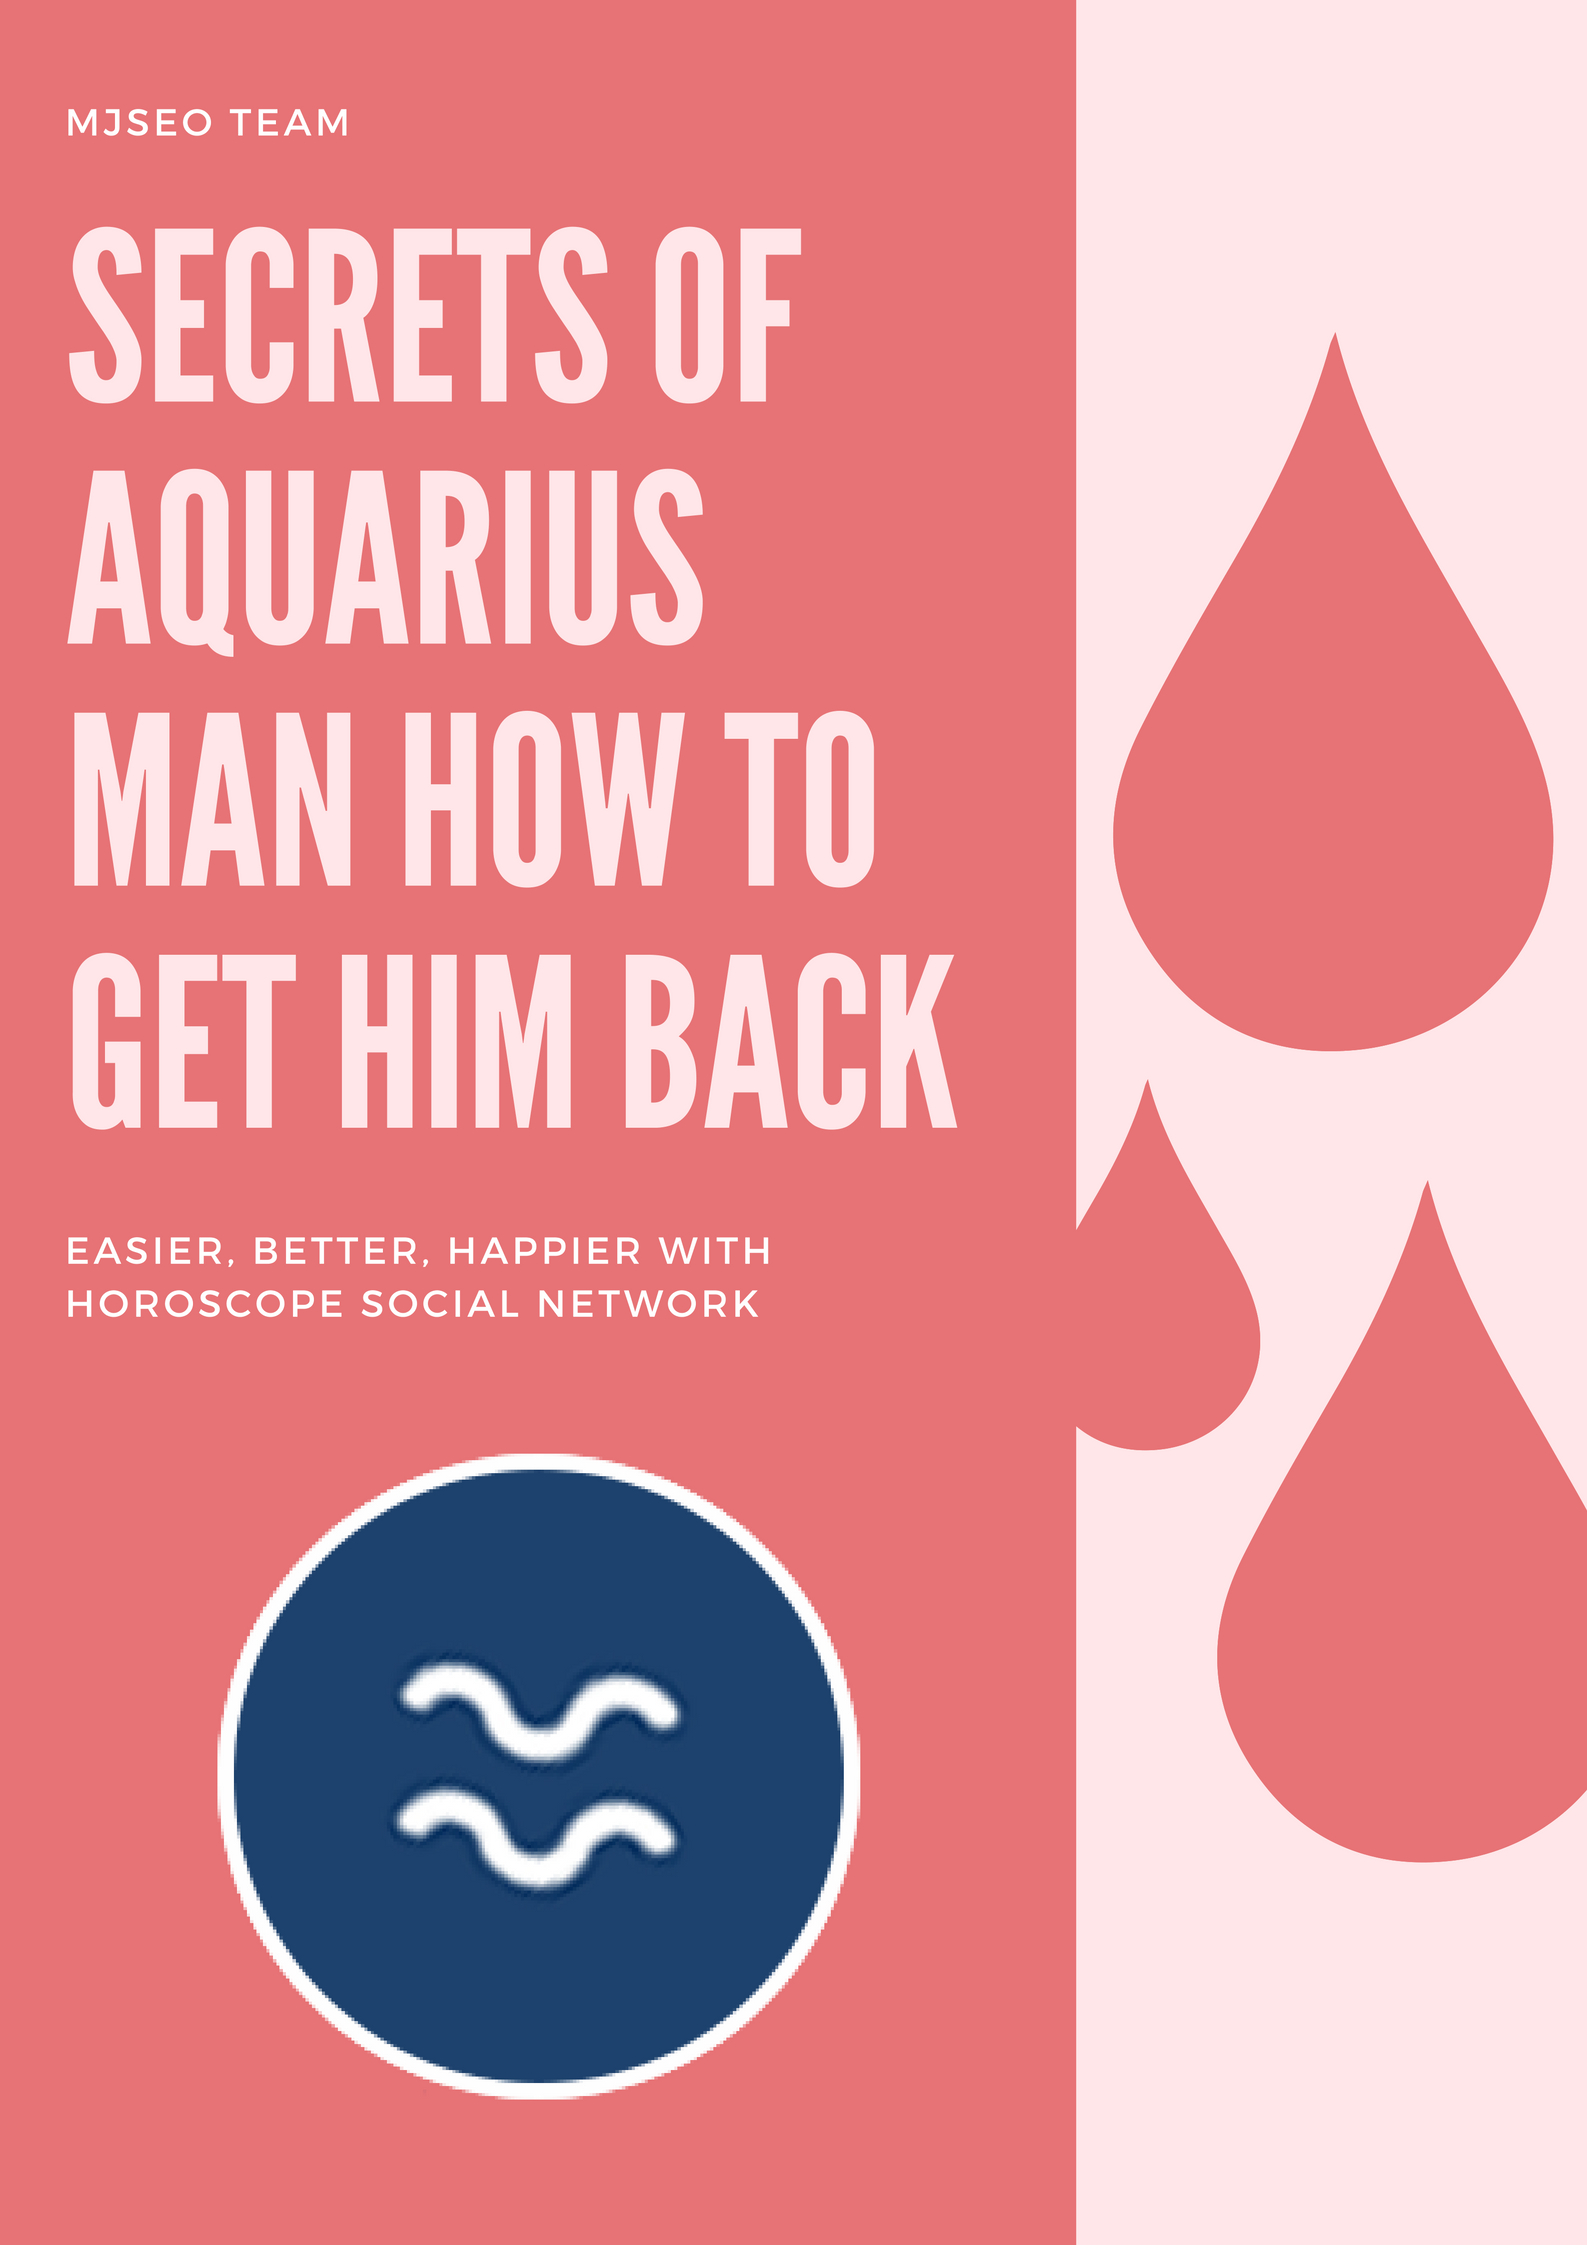 Secrets-Of-Aquarius-Man-How-To-Get-Him-Back